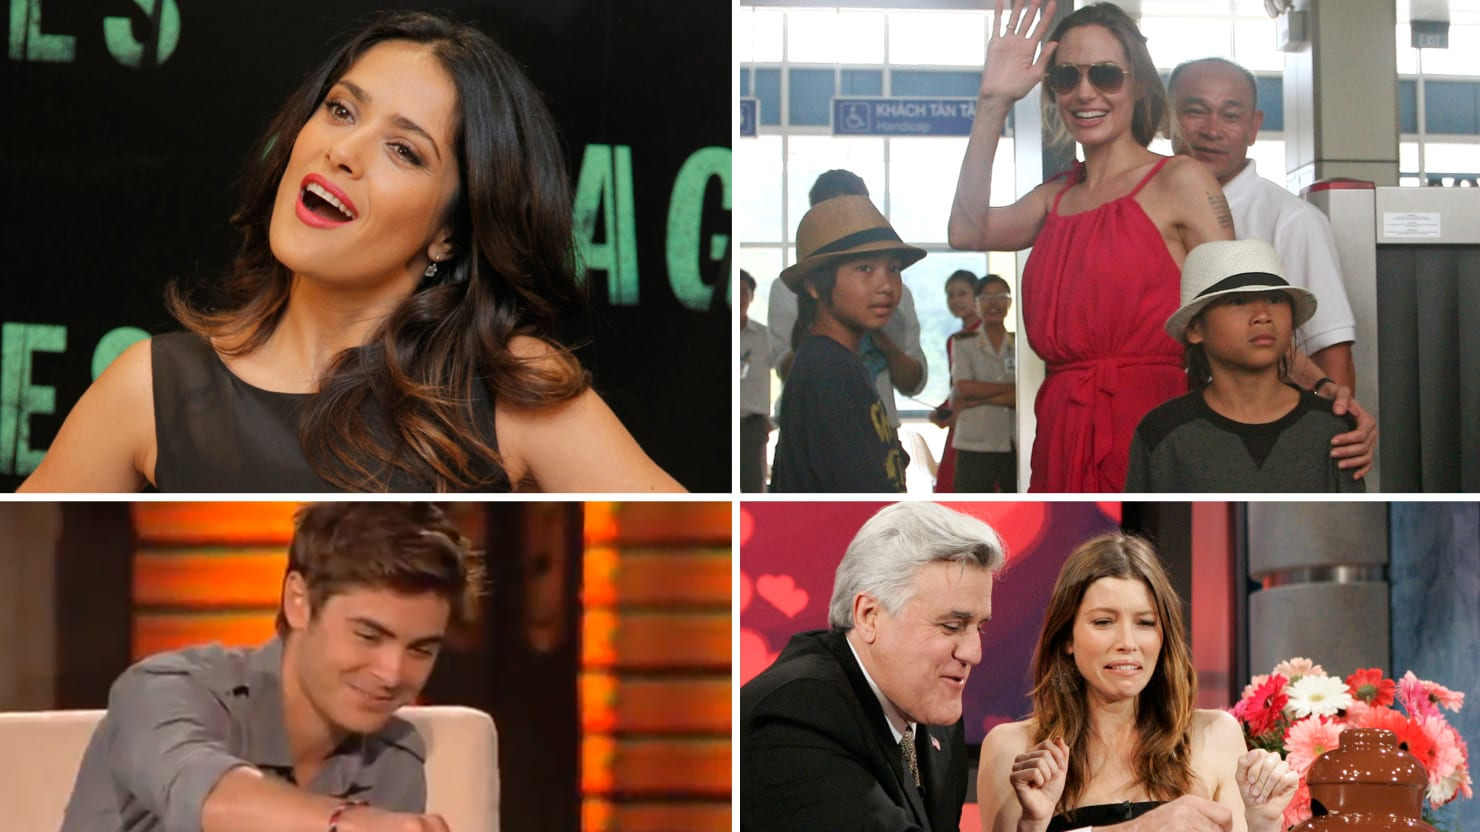 7 Celebrity Bug Eaters From Salma Hayek to Zac Efron (Photos)